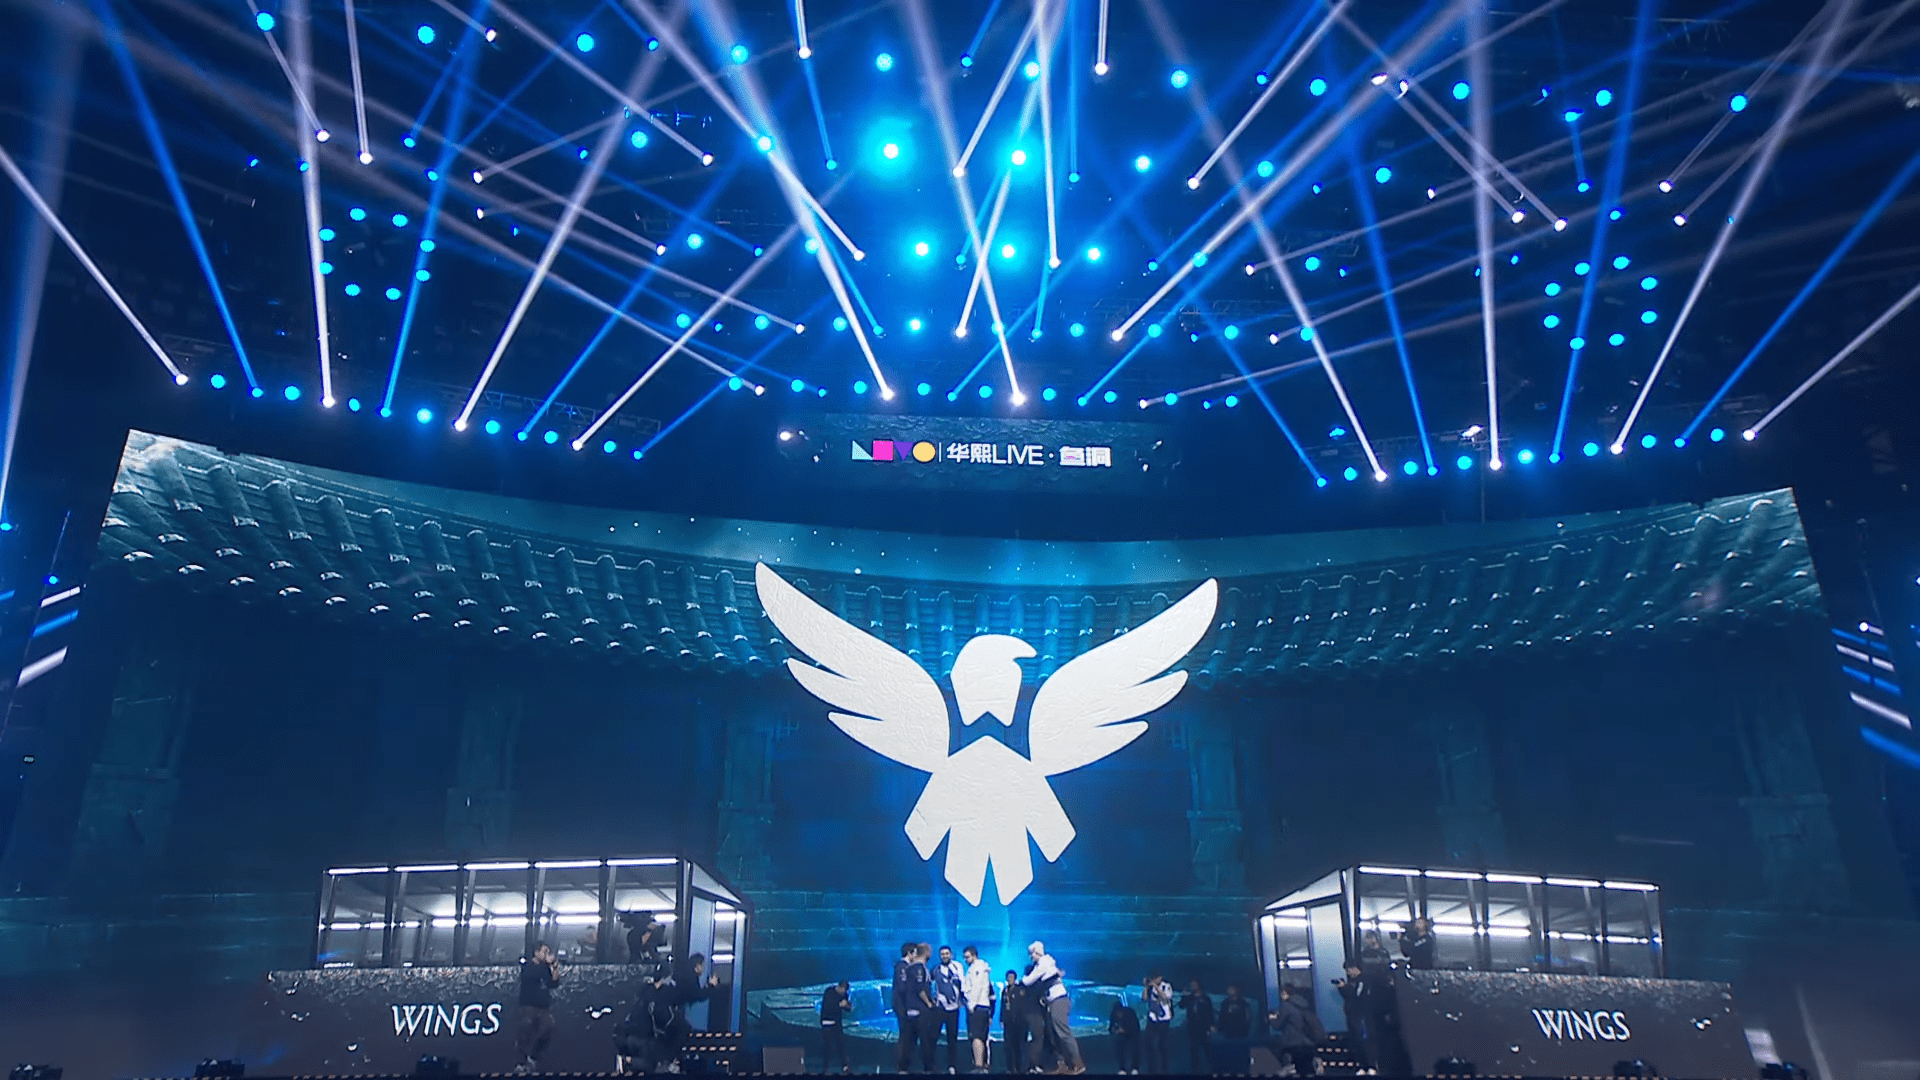 Wings Gaming Defeat Team Liquid In Exhibition Match Dot